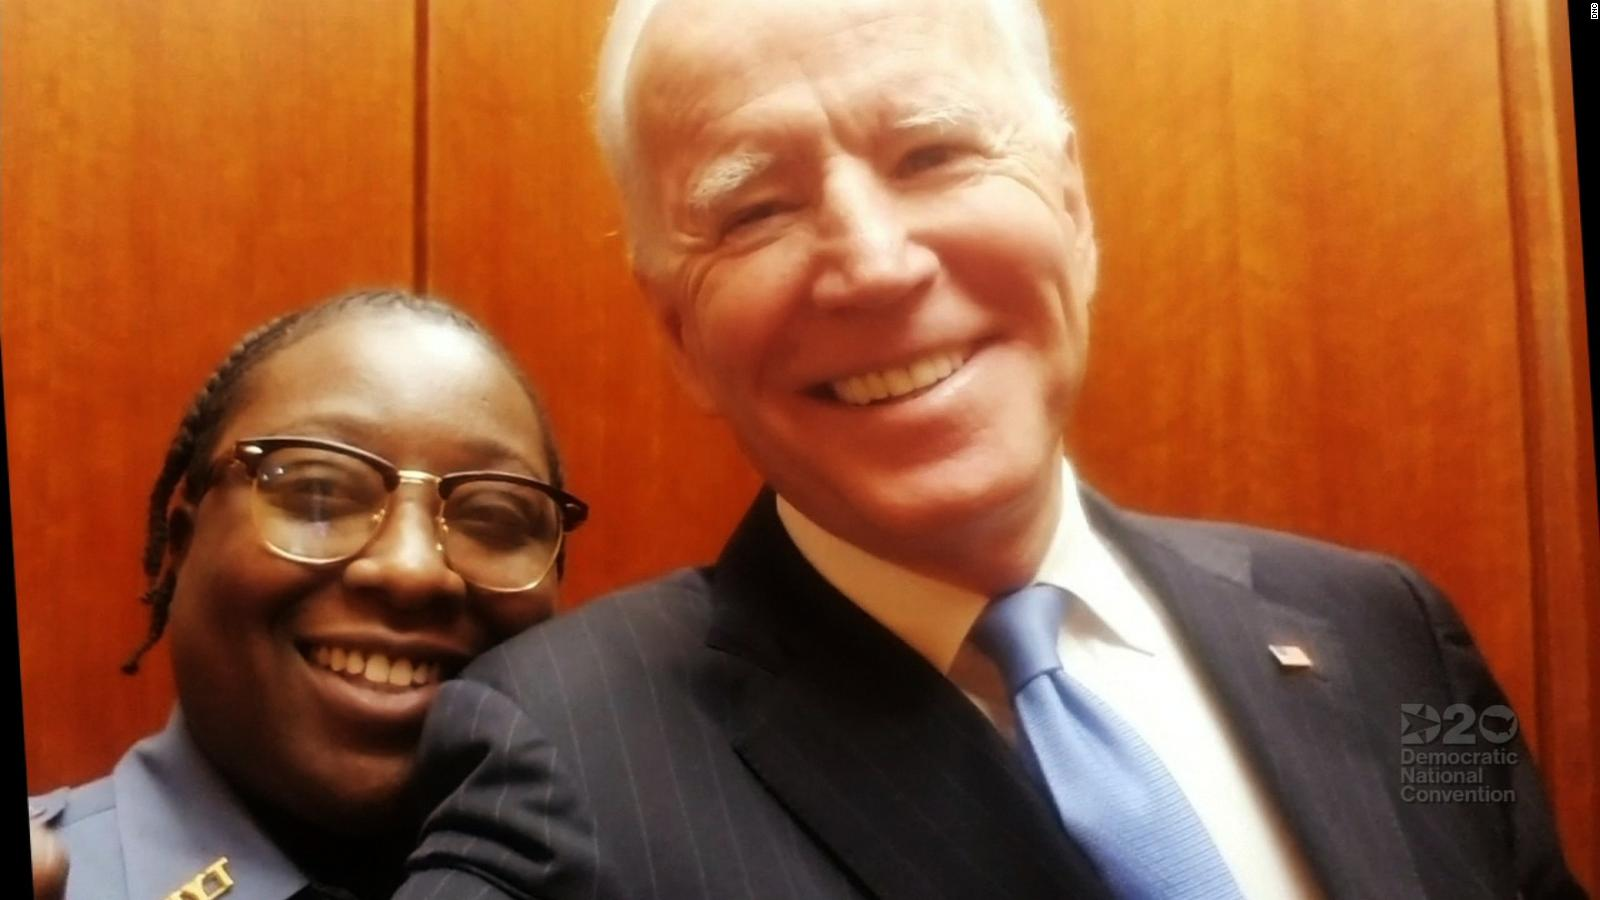 Security guard who met Joe Biden in elevator gives first nominating speech  at convention - CNNPolitics